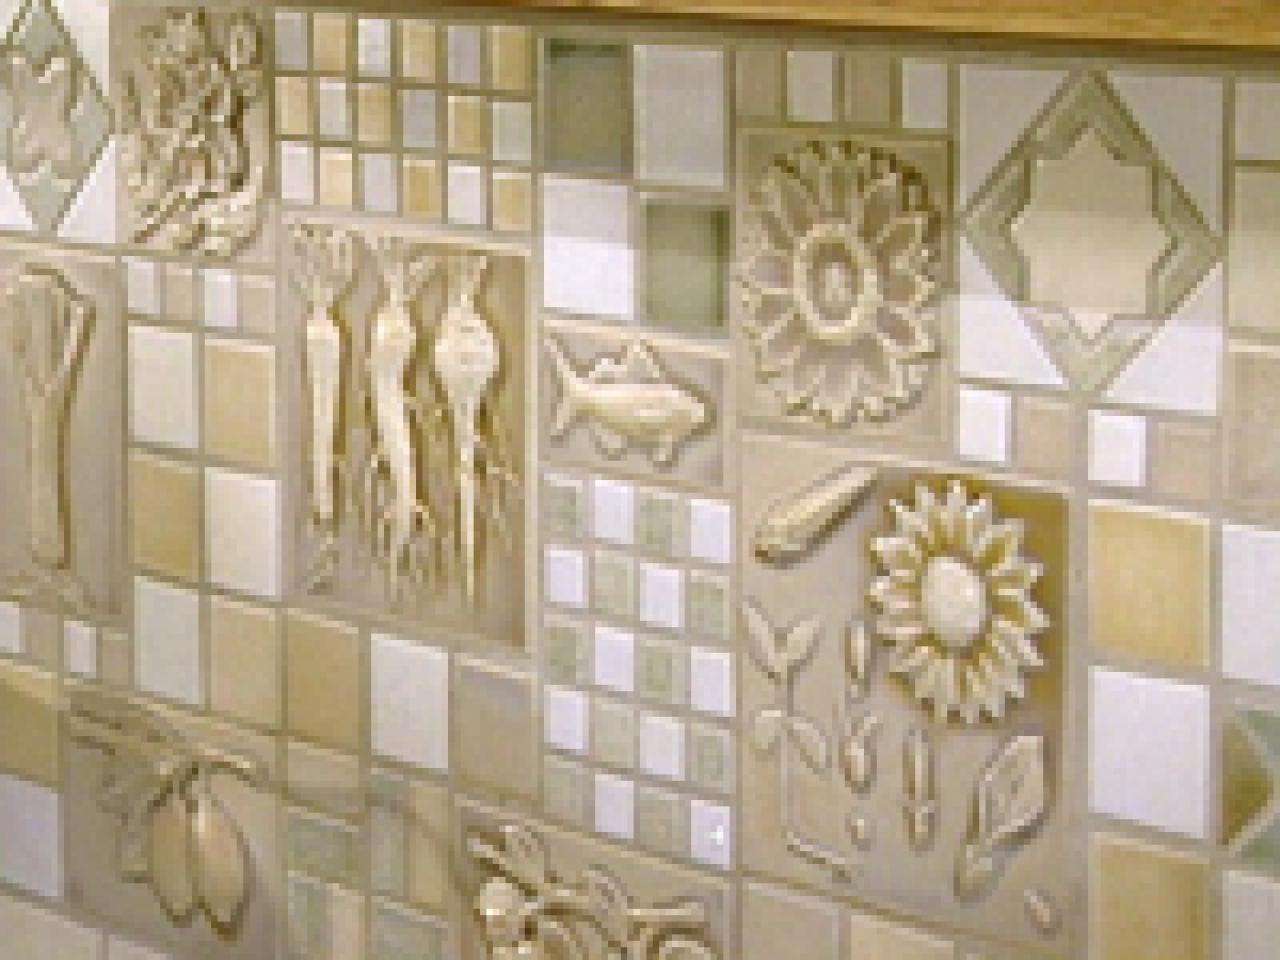 Kitchen Tiles Design Ideas tile for small kitchens: pictures, ideas & tips from hgtv | hgtv